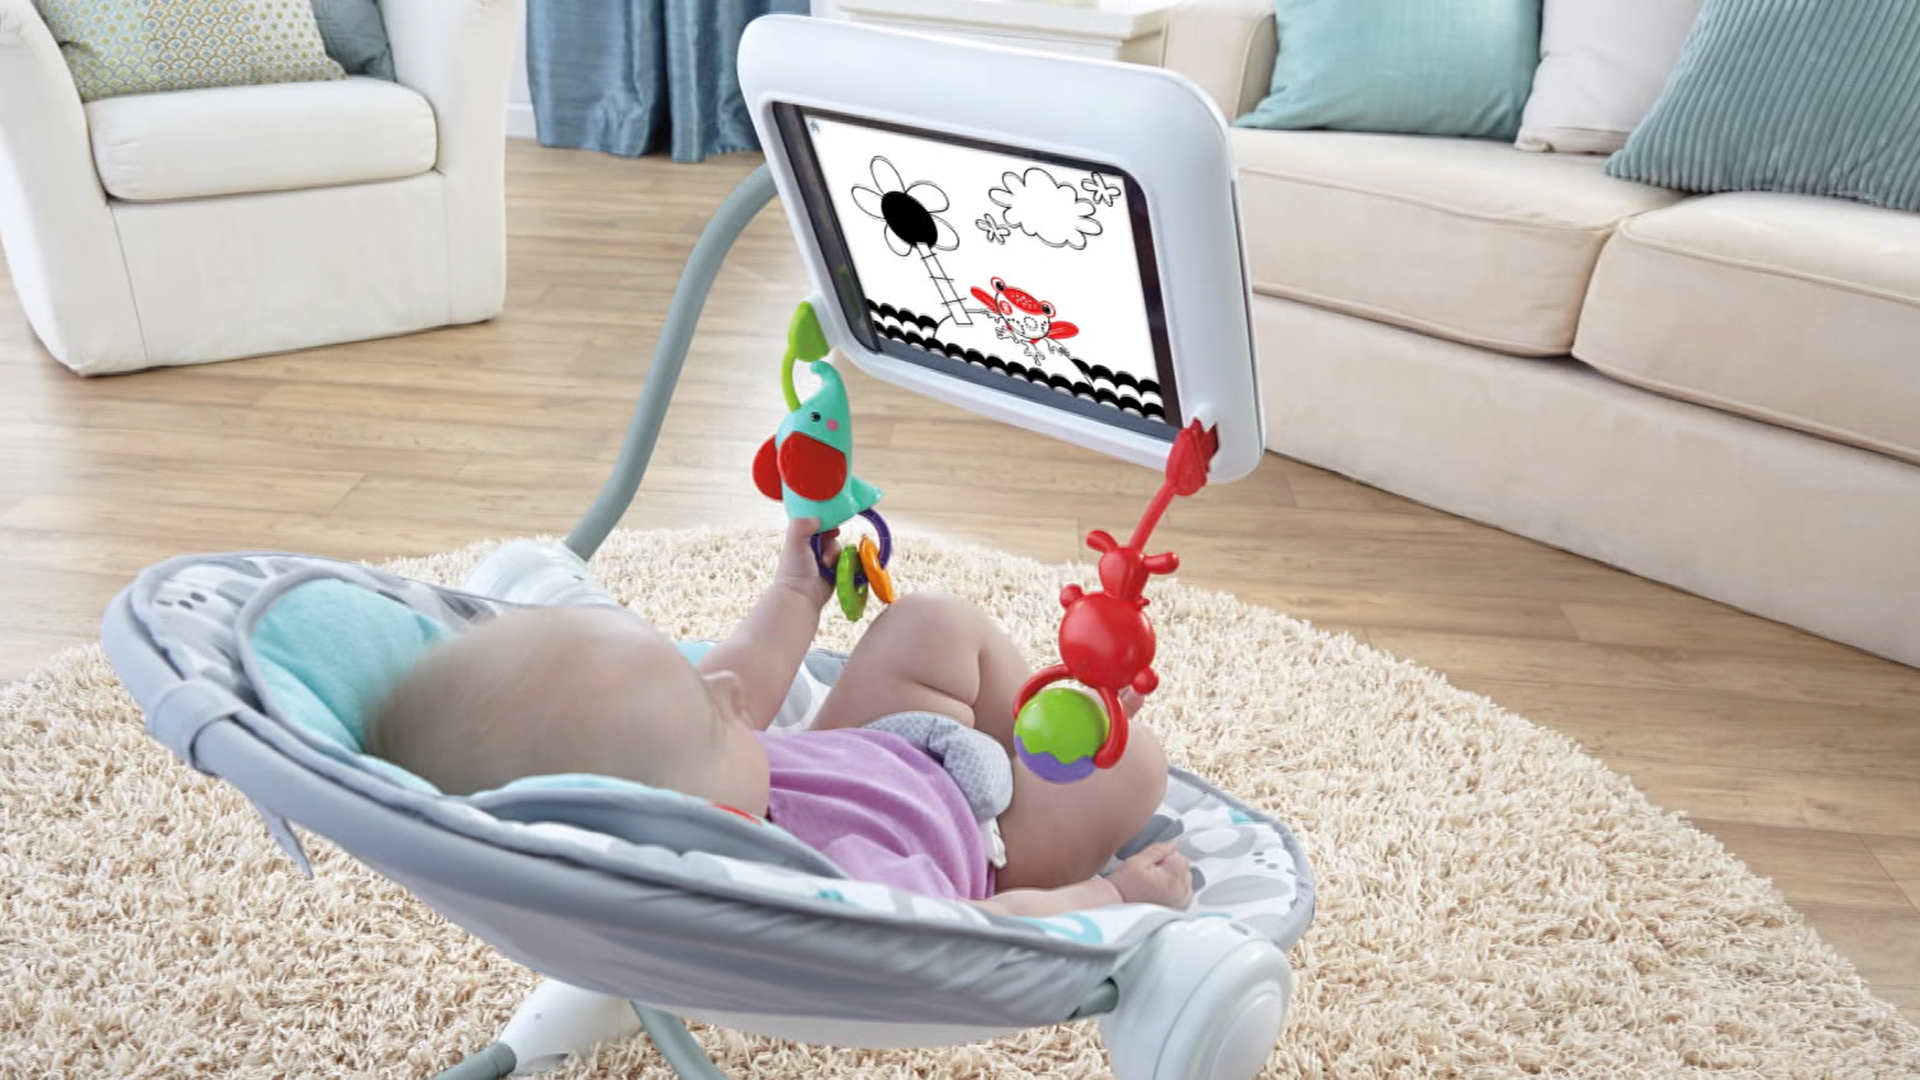 Too much tech? iPad bouncy seat makes some parents fuss - NBC News